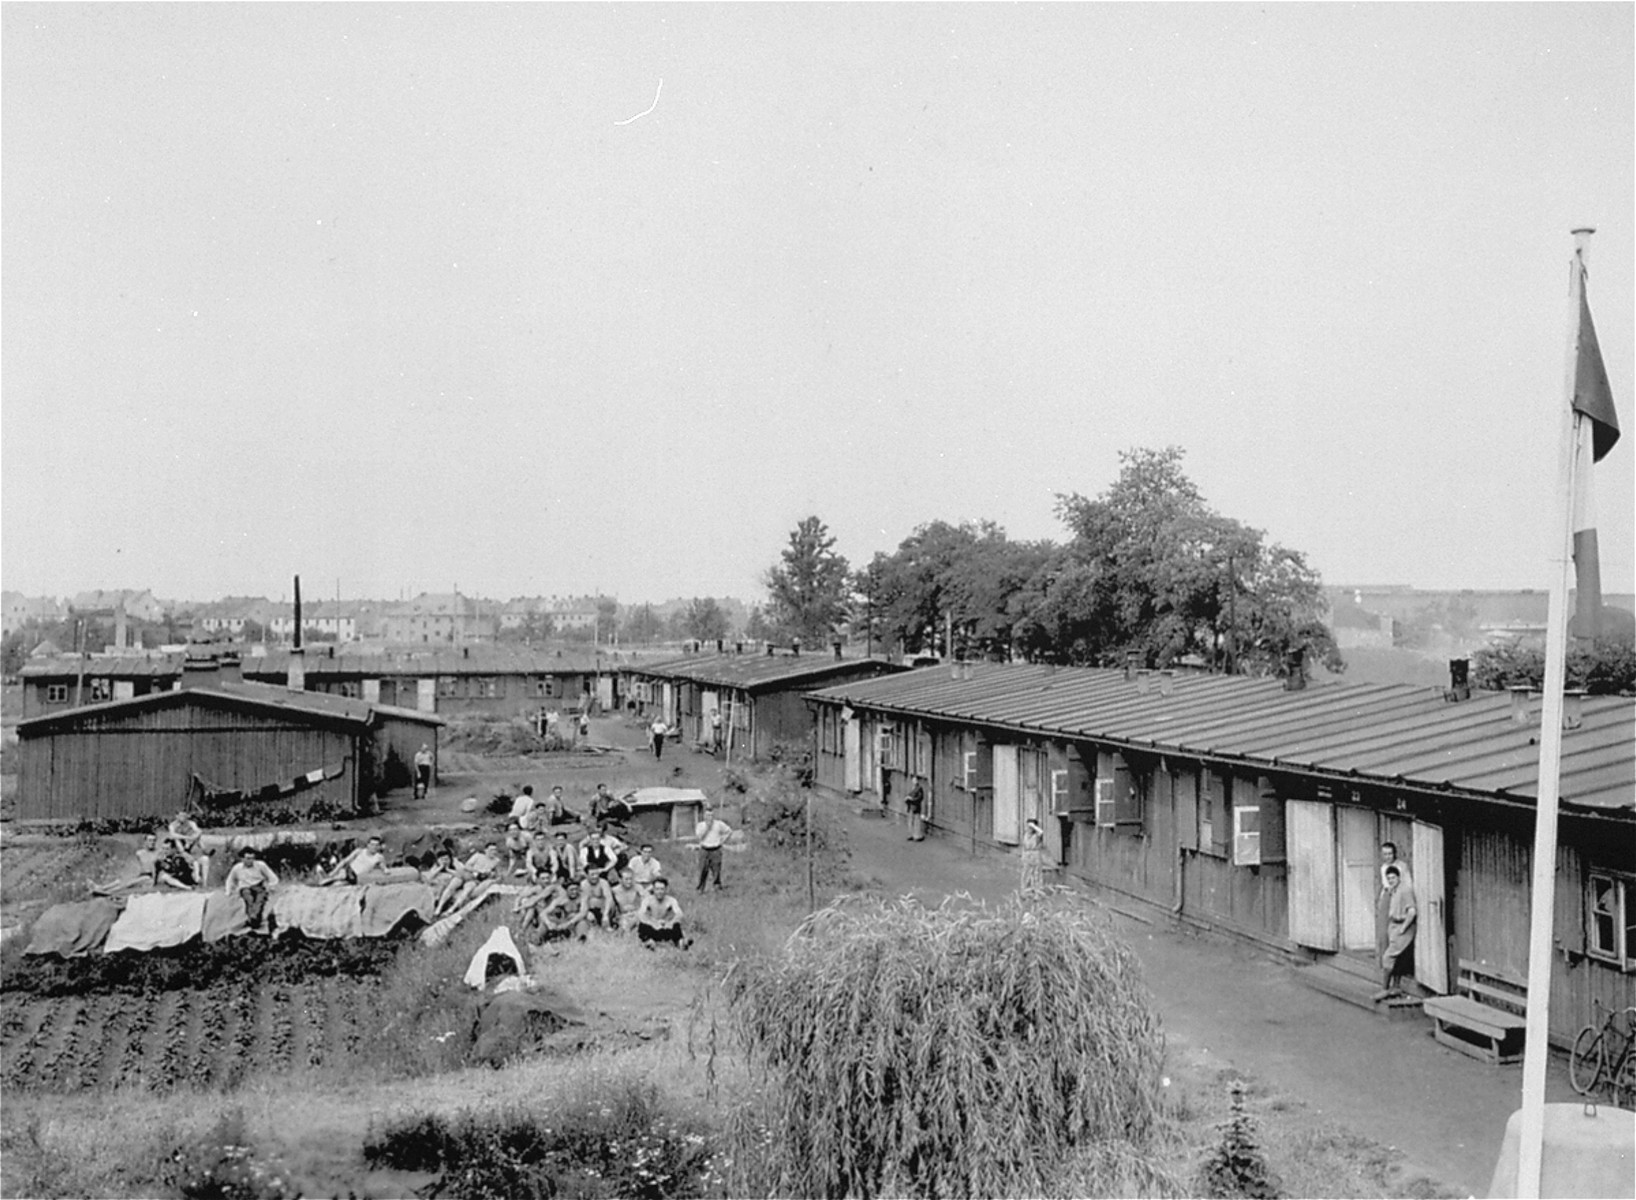 View of the Frohe Zukumft [Happy Future] DP camp.  This is one of 26 DP camps near Halle administered by UNRRA team no.105.  The UNRRA team is responsible for the organization of medical and welfare services and the distribution of food and clothing from requisitioned German stocks.